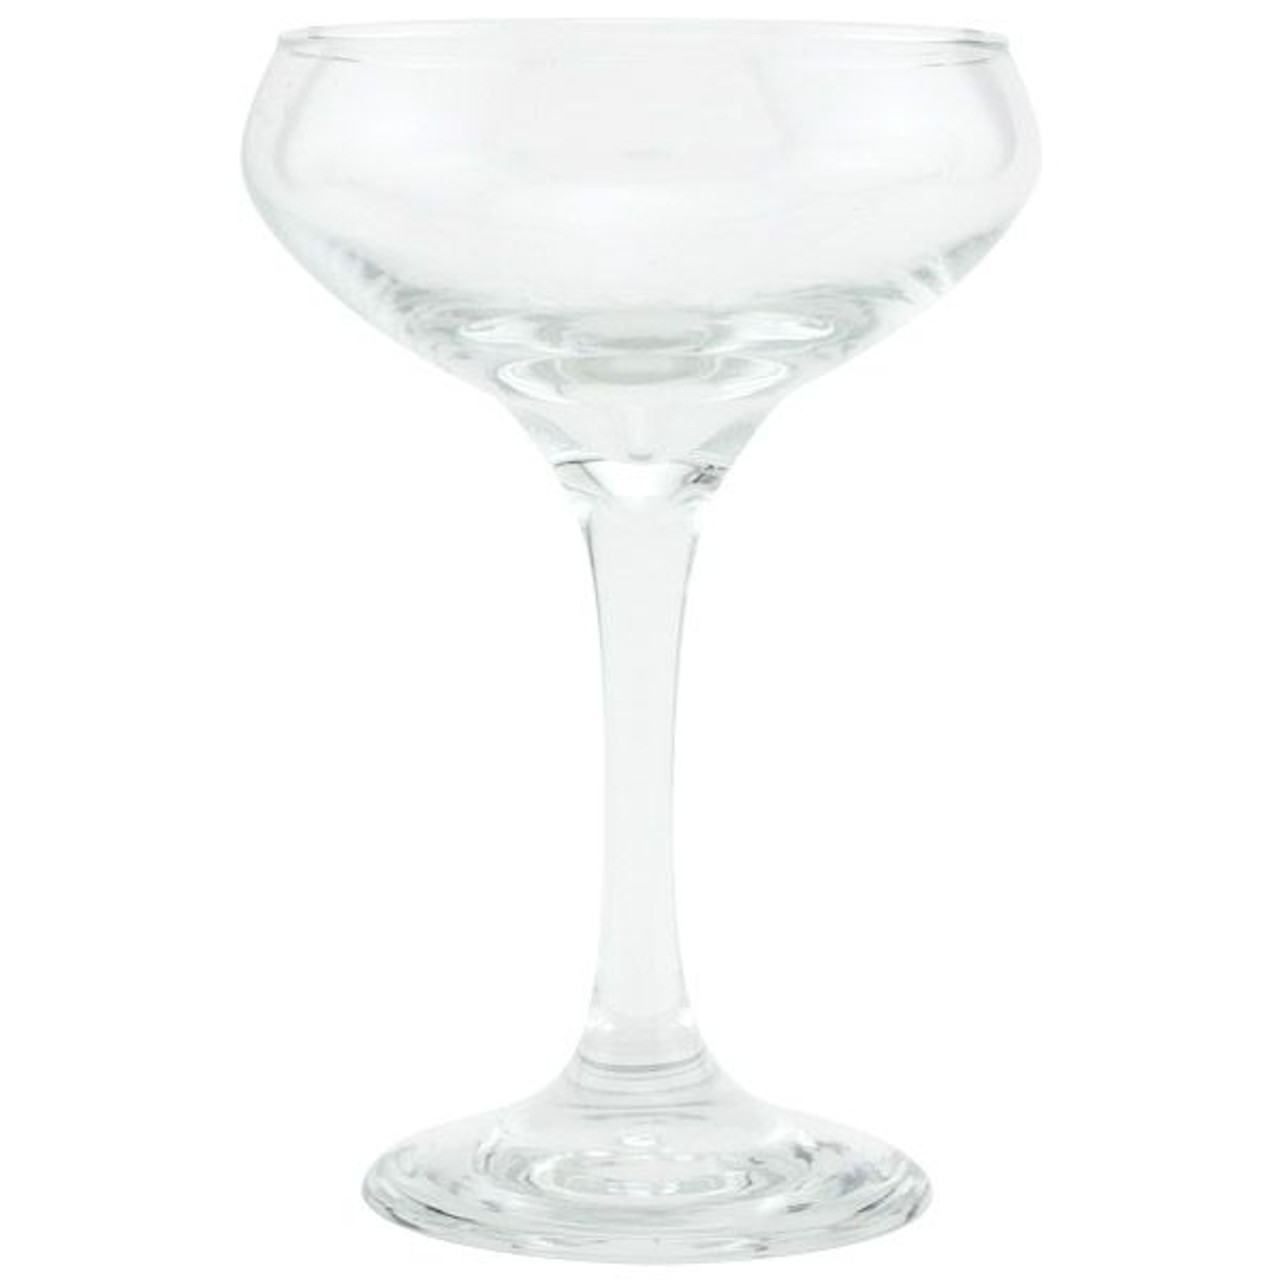 Libbey Perception Cocktail Champagne Coupe Glass 7 25 Oz